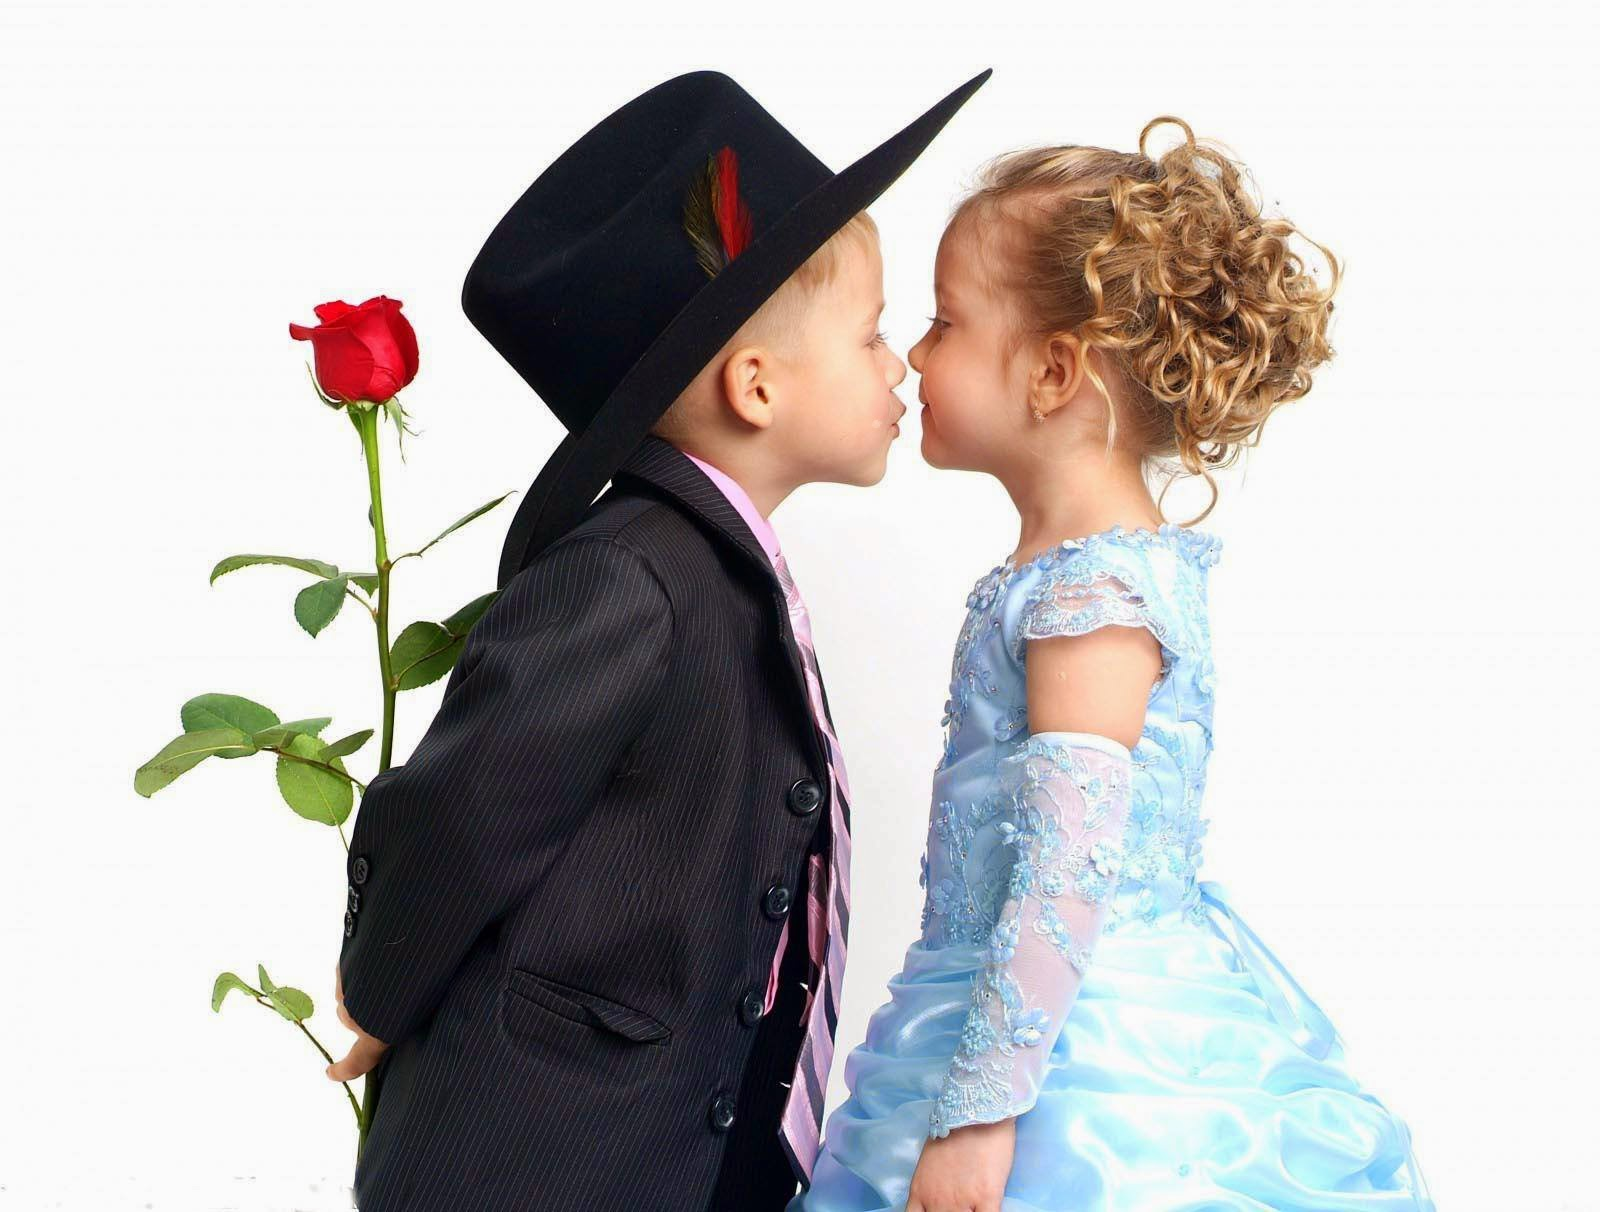 Uncategorized Kids Kiss Wallpaper kids kissing pictures on the lips images my online mela